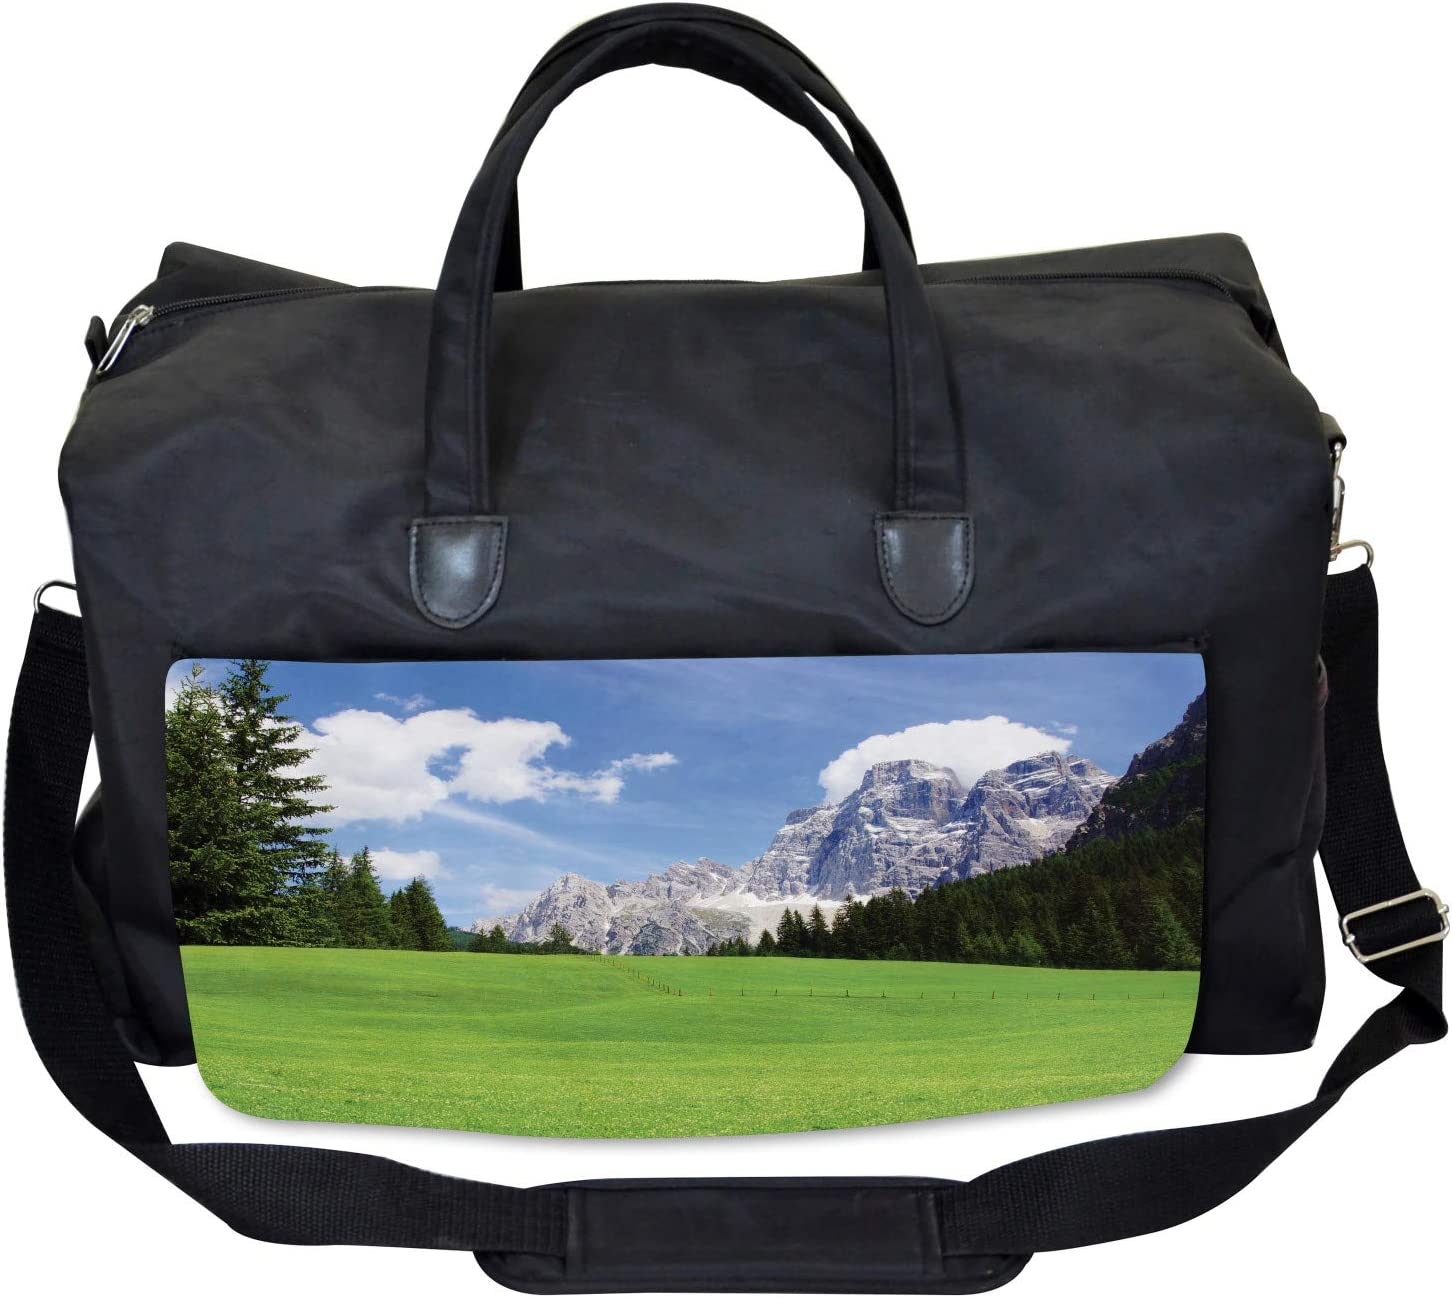 Rural Country Mountain Ambesonne Italy Gym Bag Large Weekender Carry-on